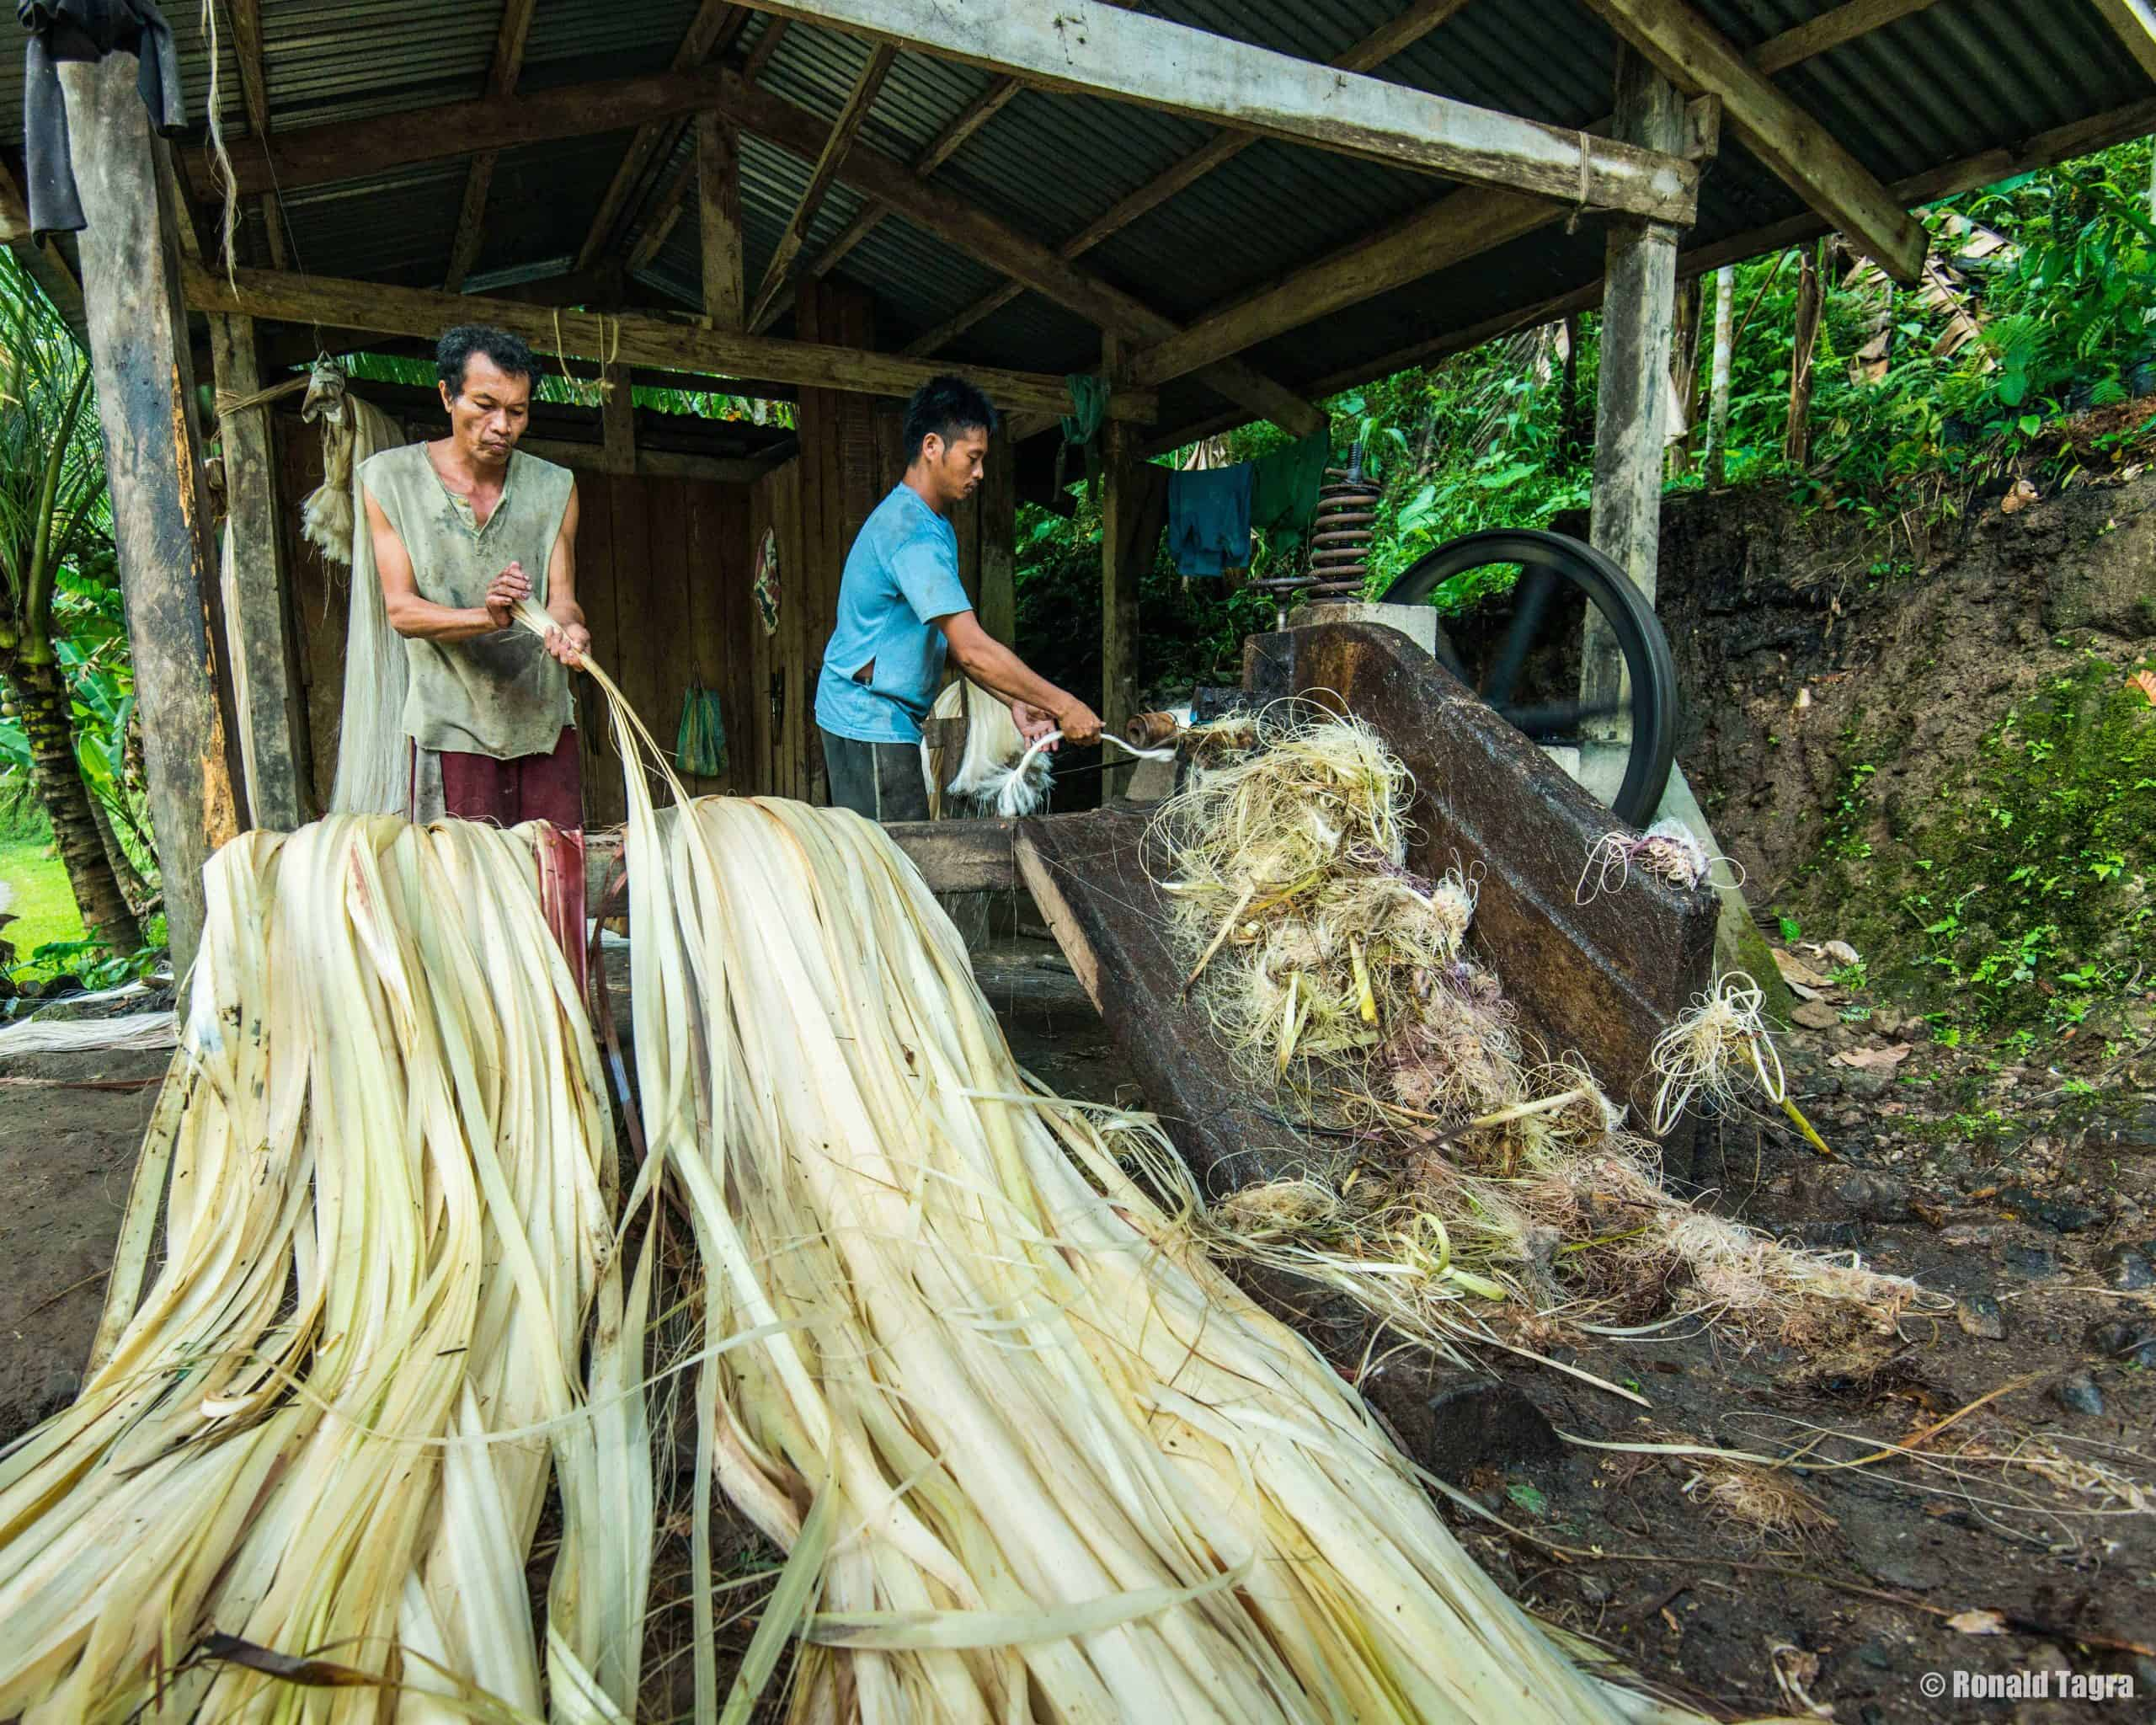 abaca being processed